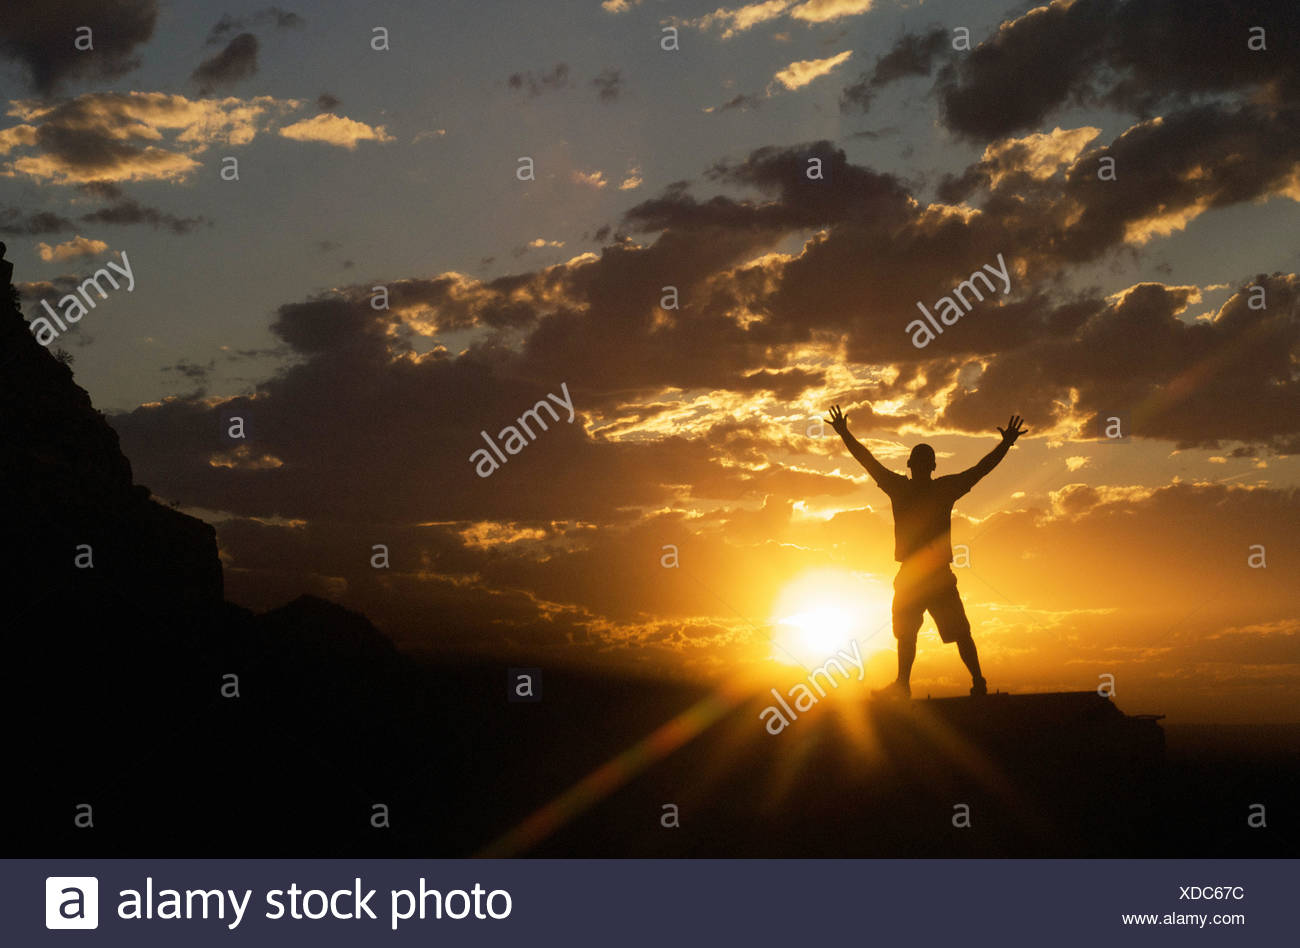 Male figure with arms outstretched standing with sunset in background - Stock Image